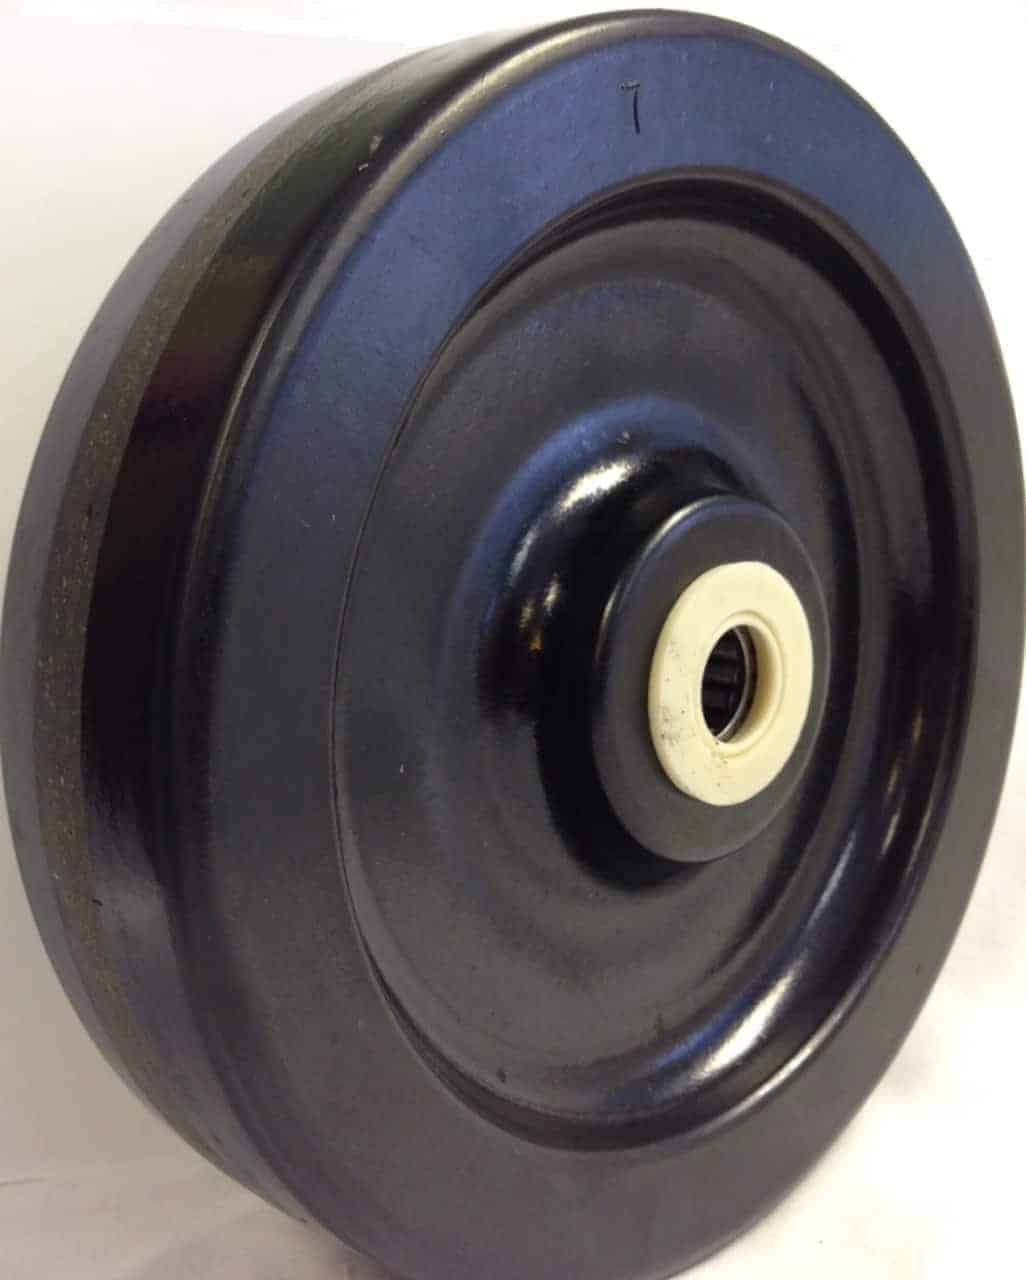 12″ Phenolic Wheel With 4-1/4″ Hub 1-1/2″ Roller Bearing 4000 Lbs Capacity